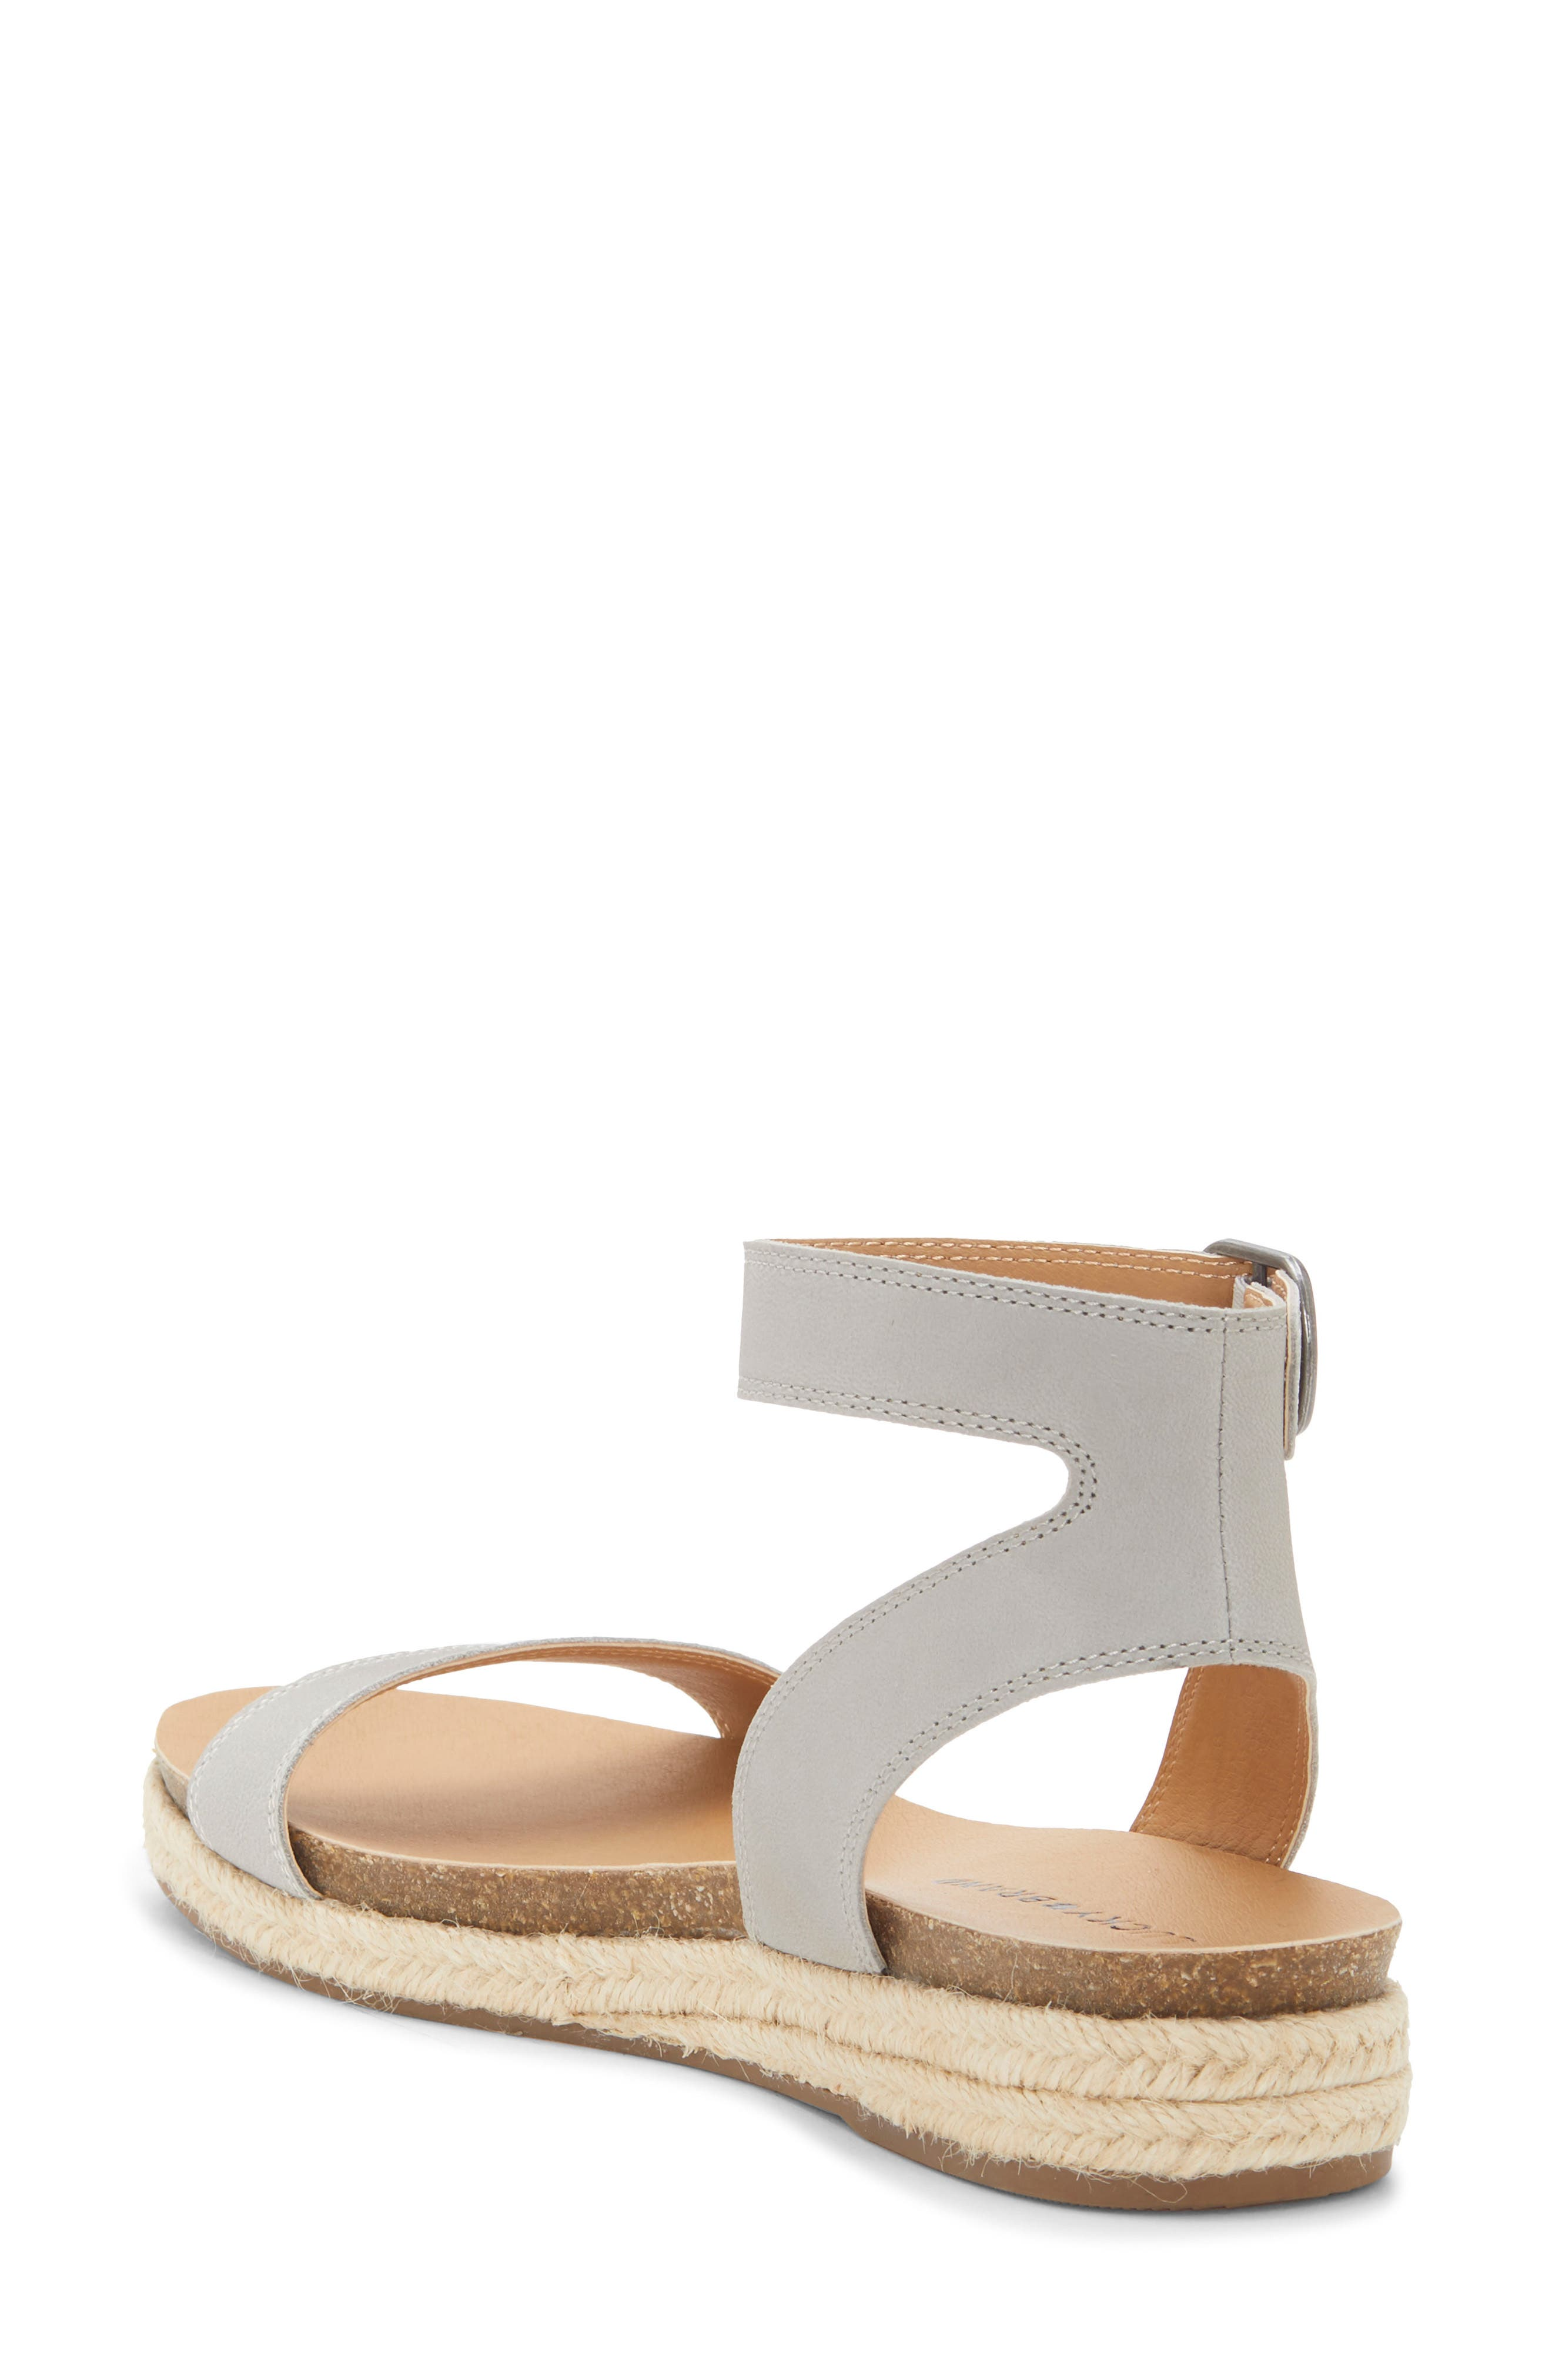 LUCKY BRAND, Garston Espadrille Sandal, Alternate thumbnail 2, color, CHINCHILLA LEATHER